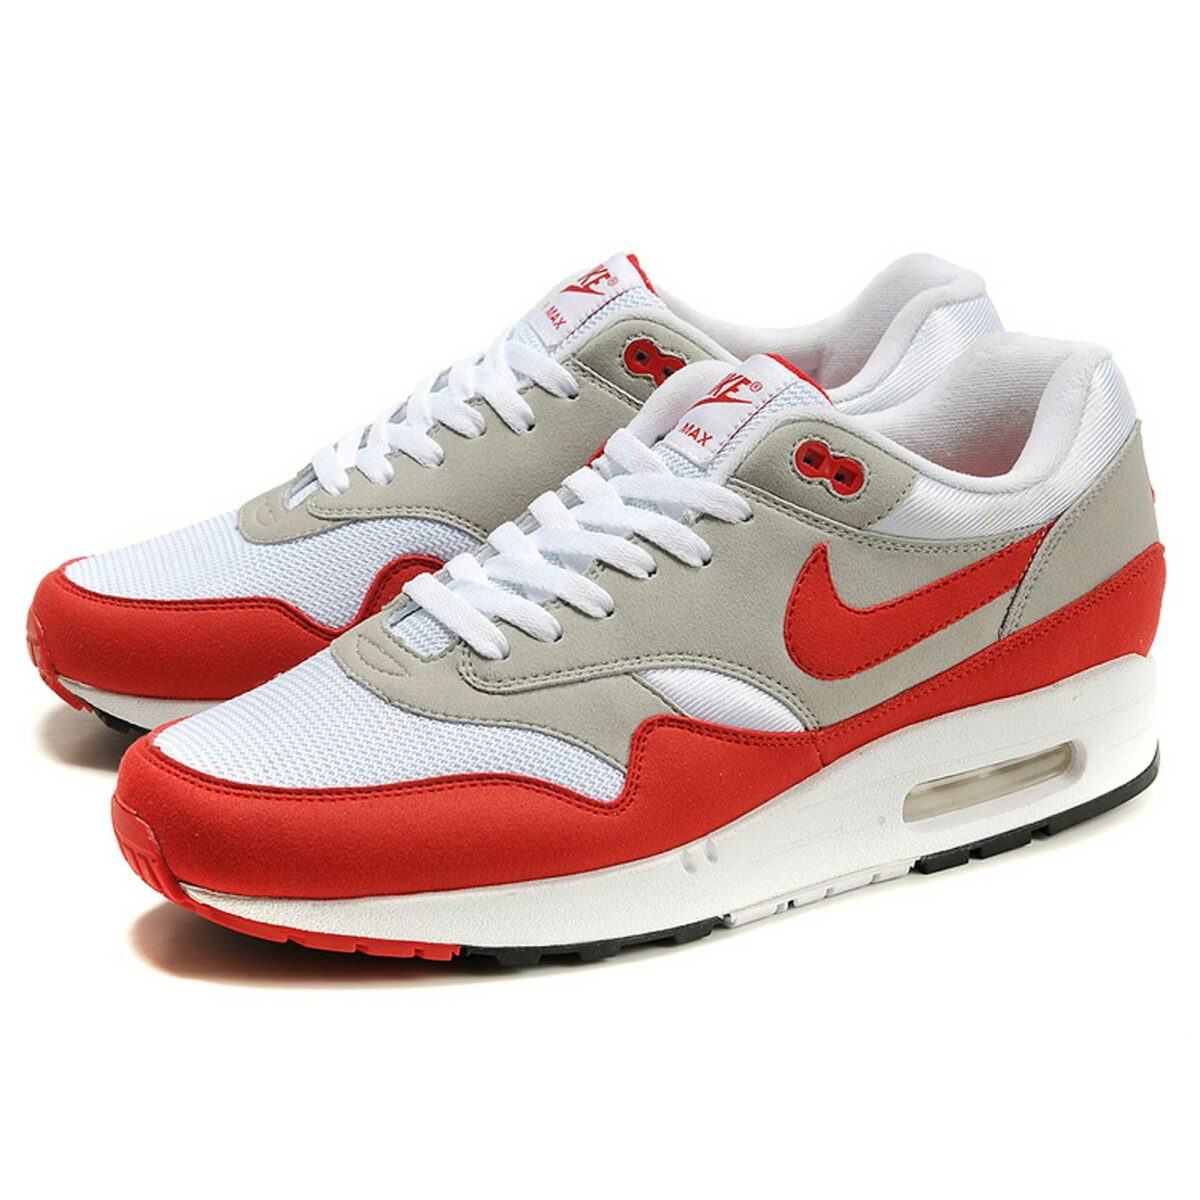 nike air max 1 OG QS red grey 378830_161 купить